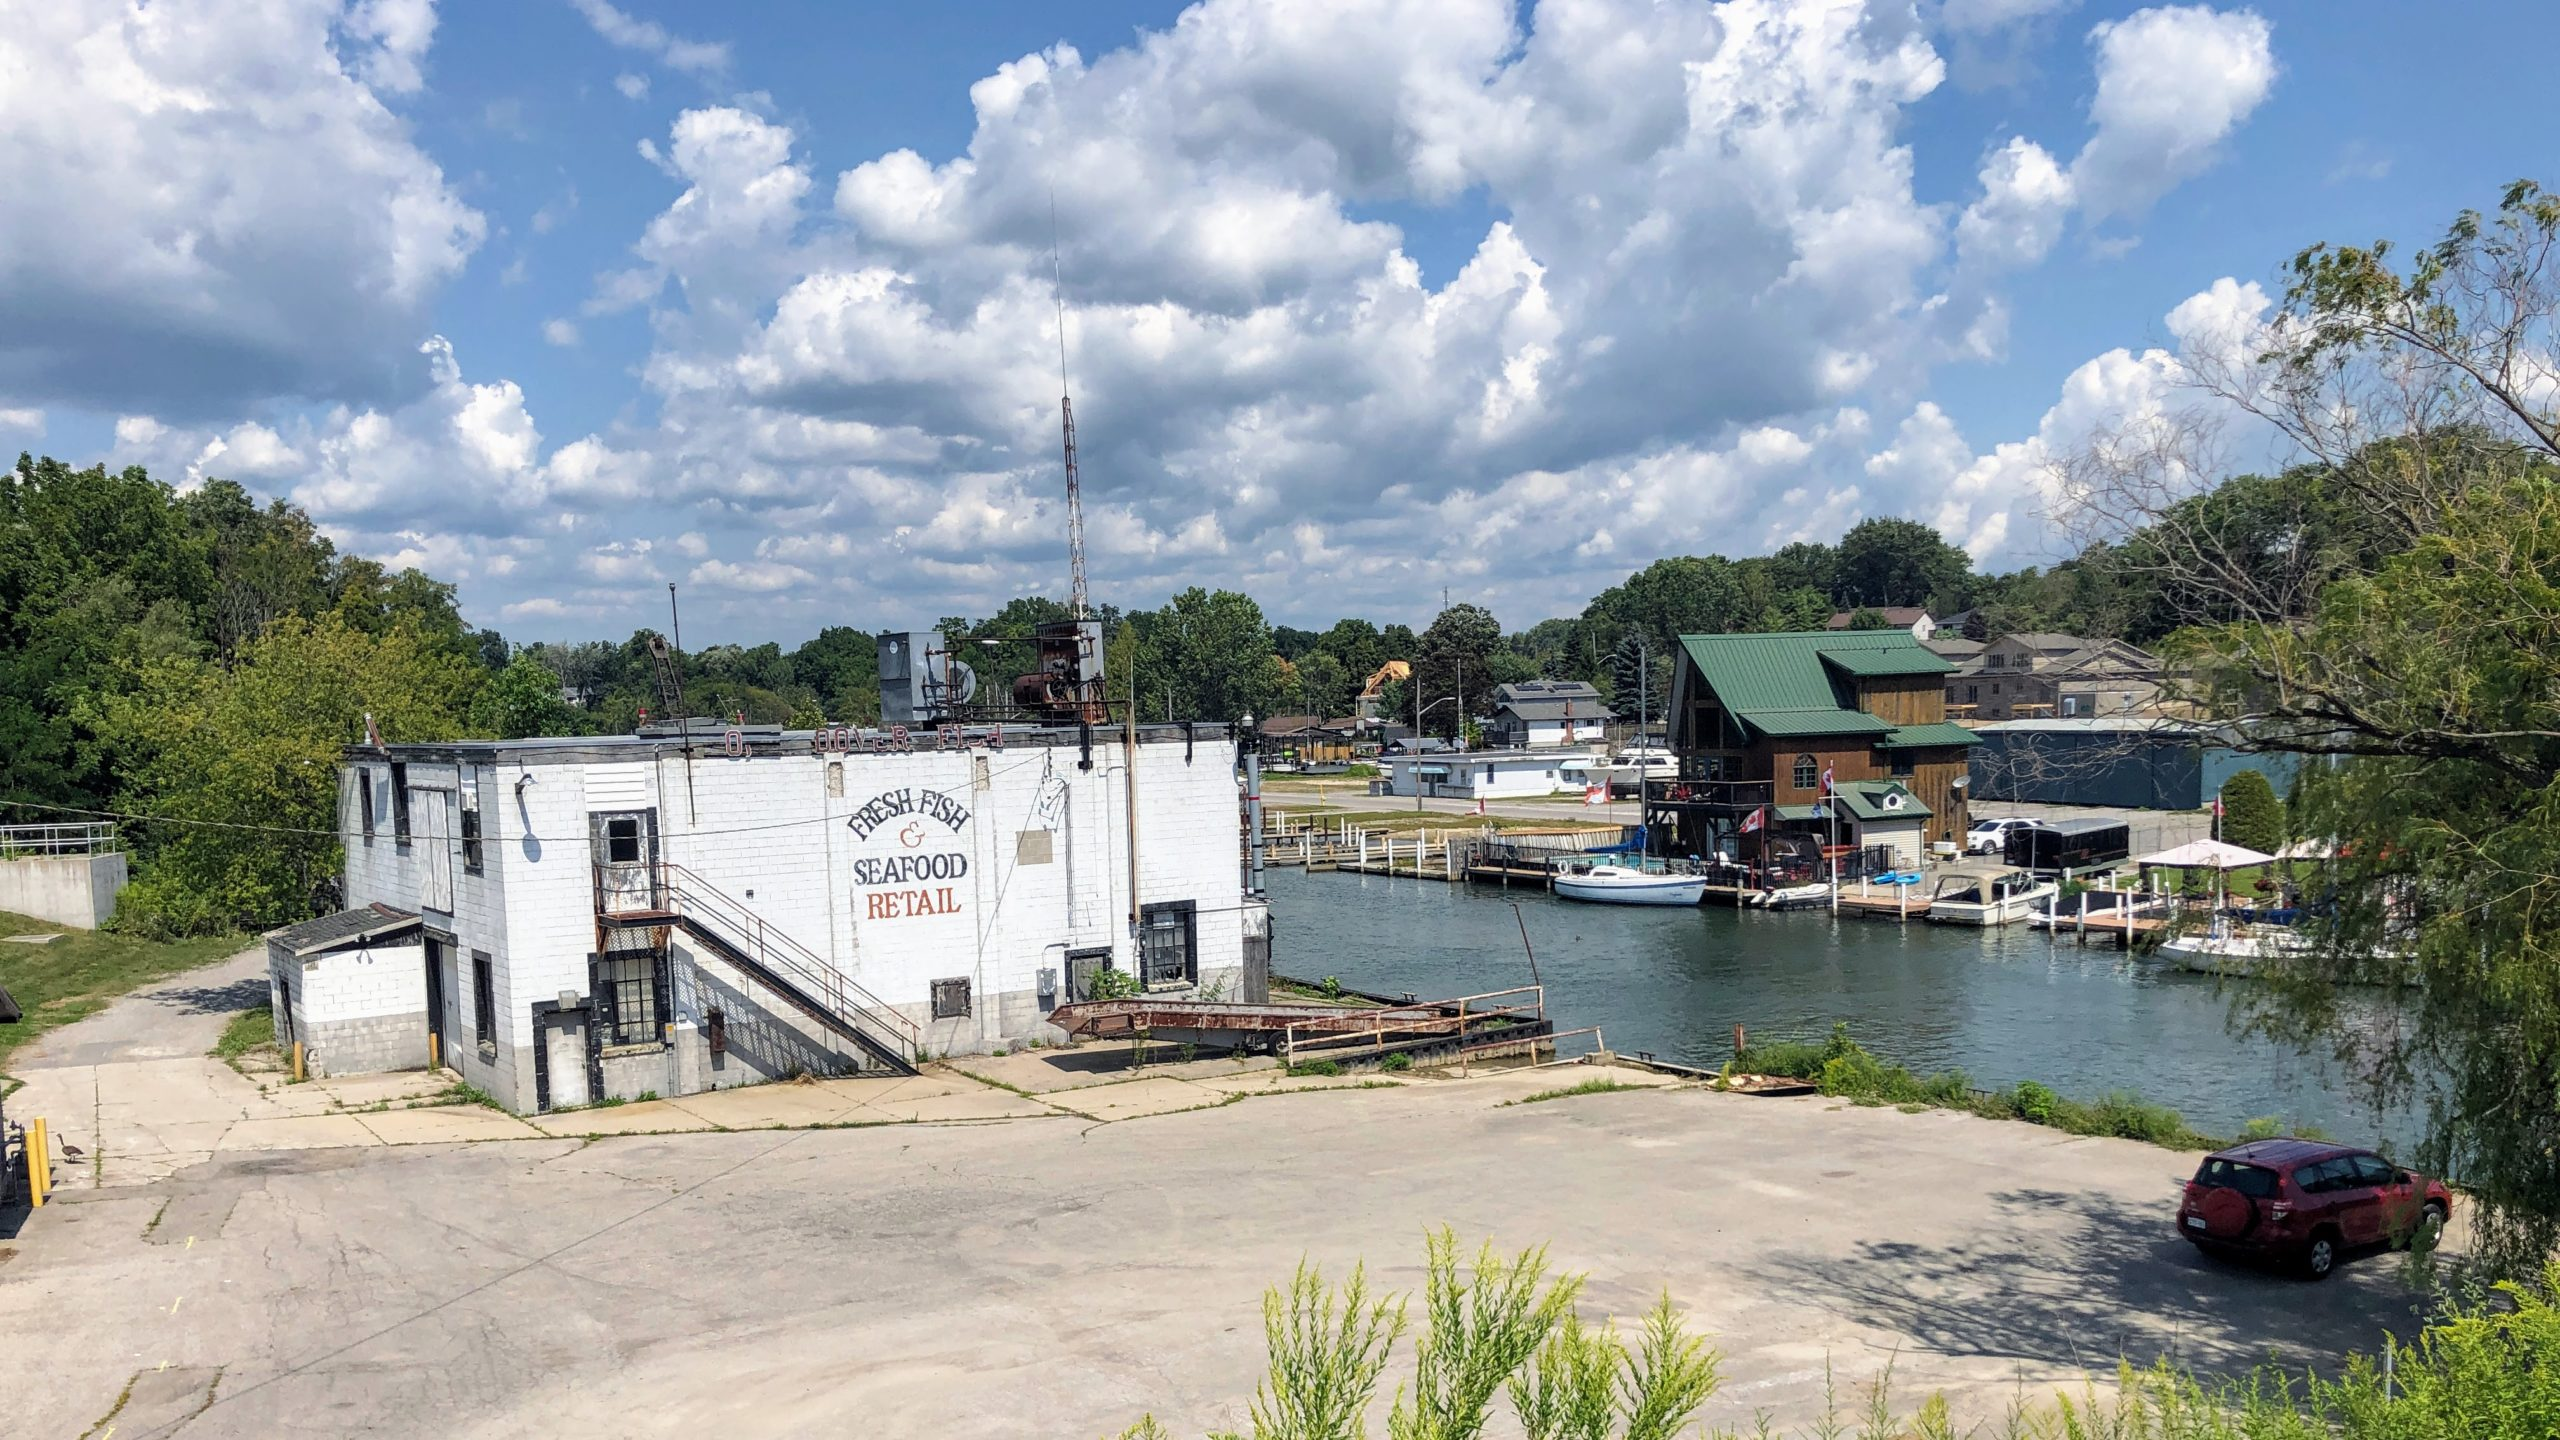 Fresh Fish & Seafood Retail Port Dover